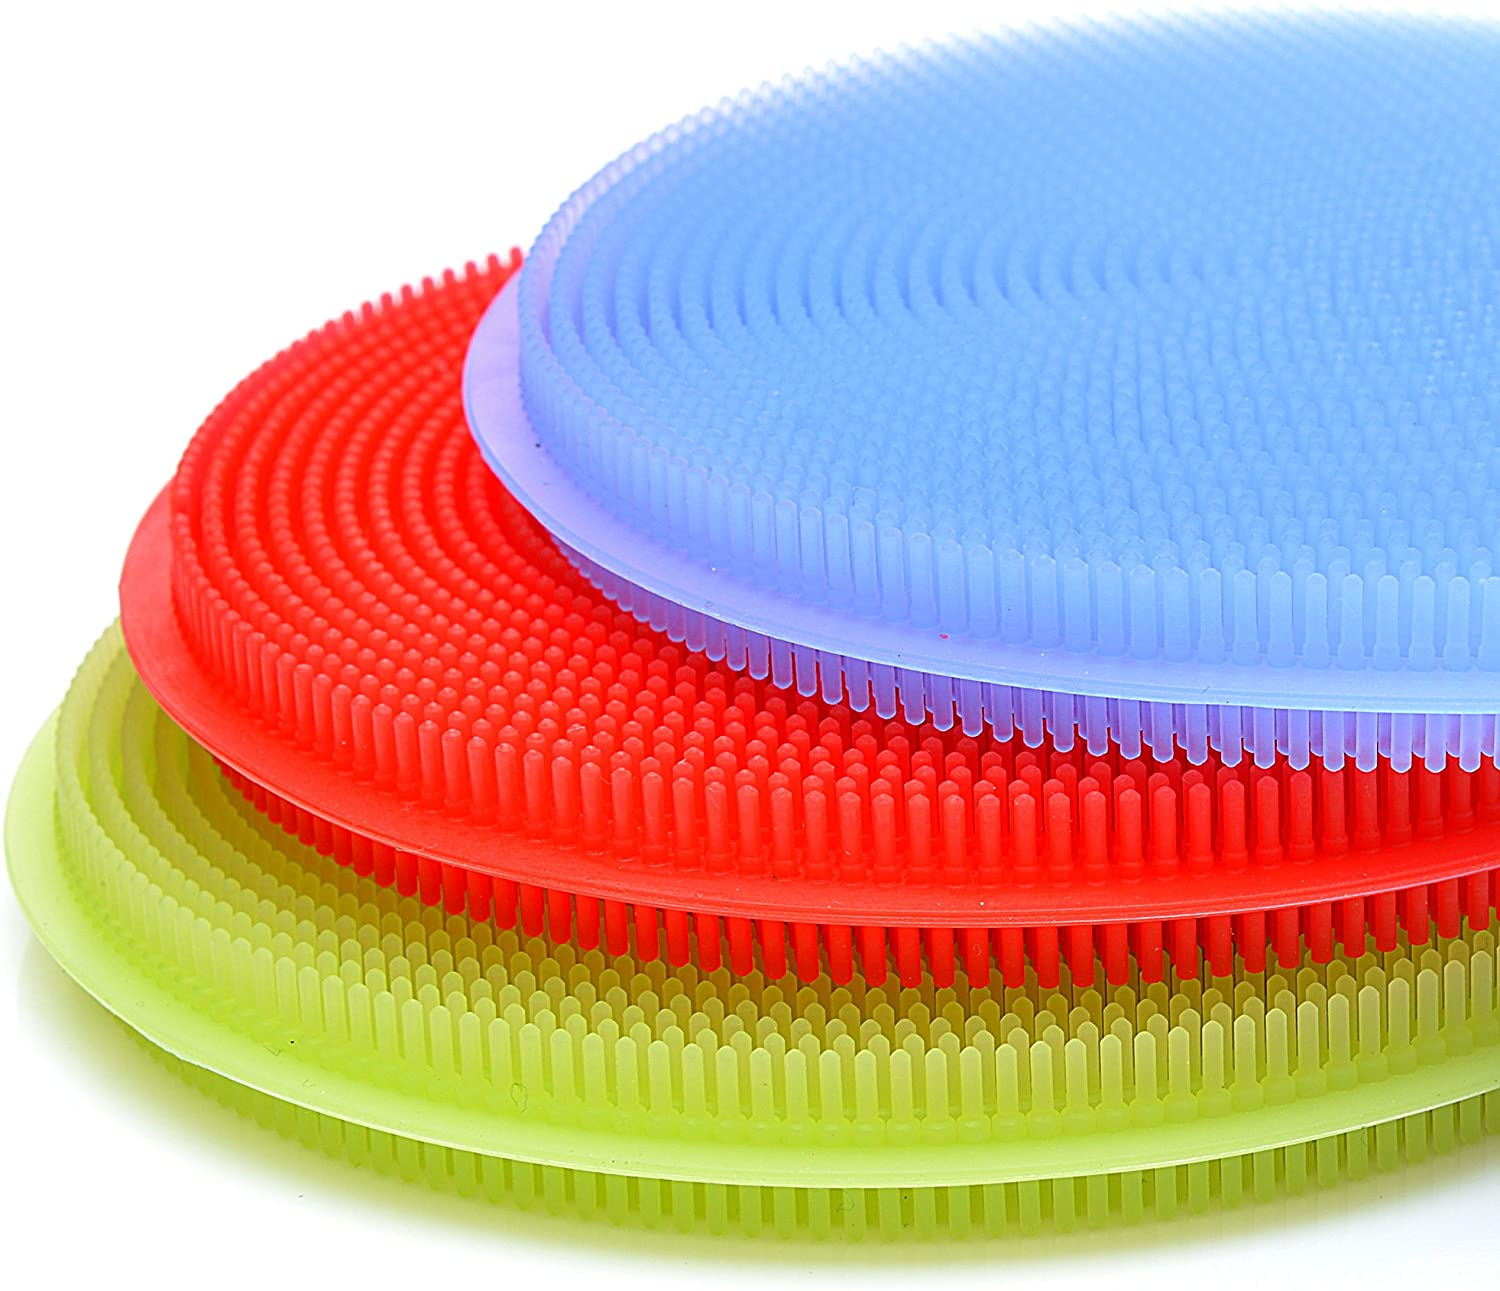 Silicone scrubber in green, blue and red